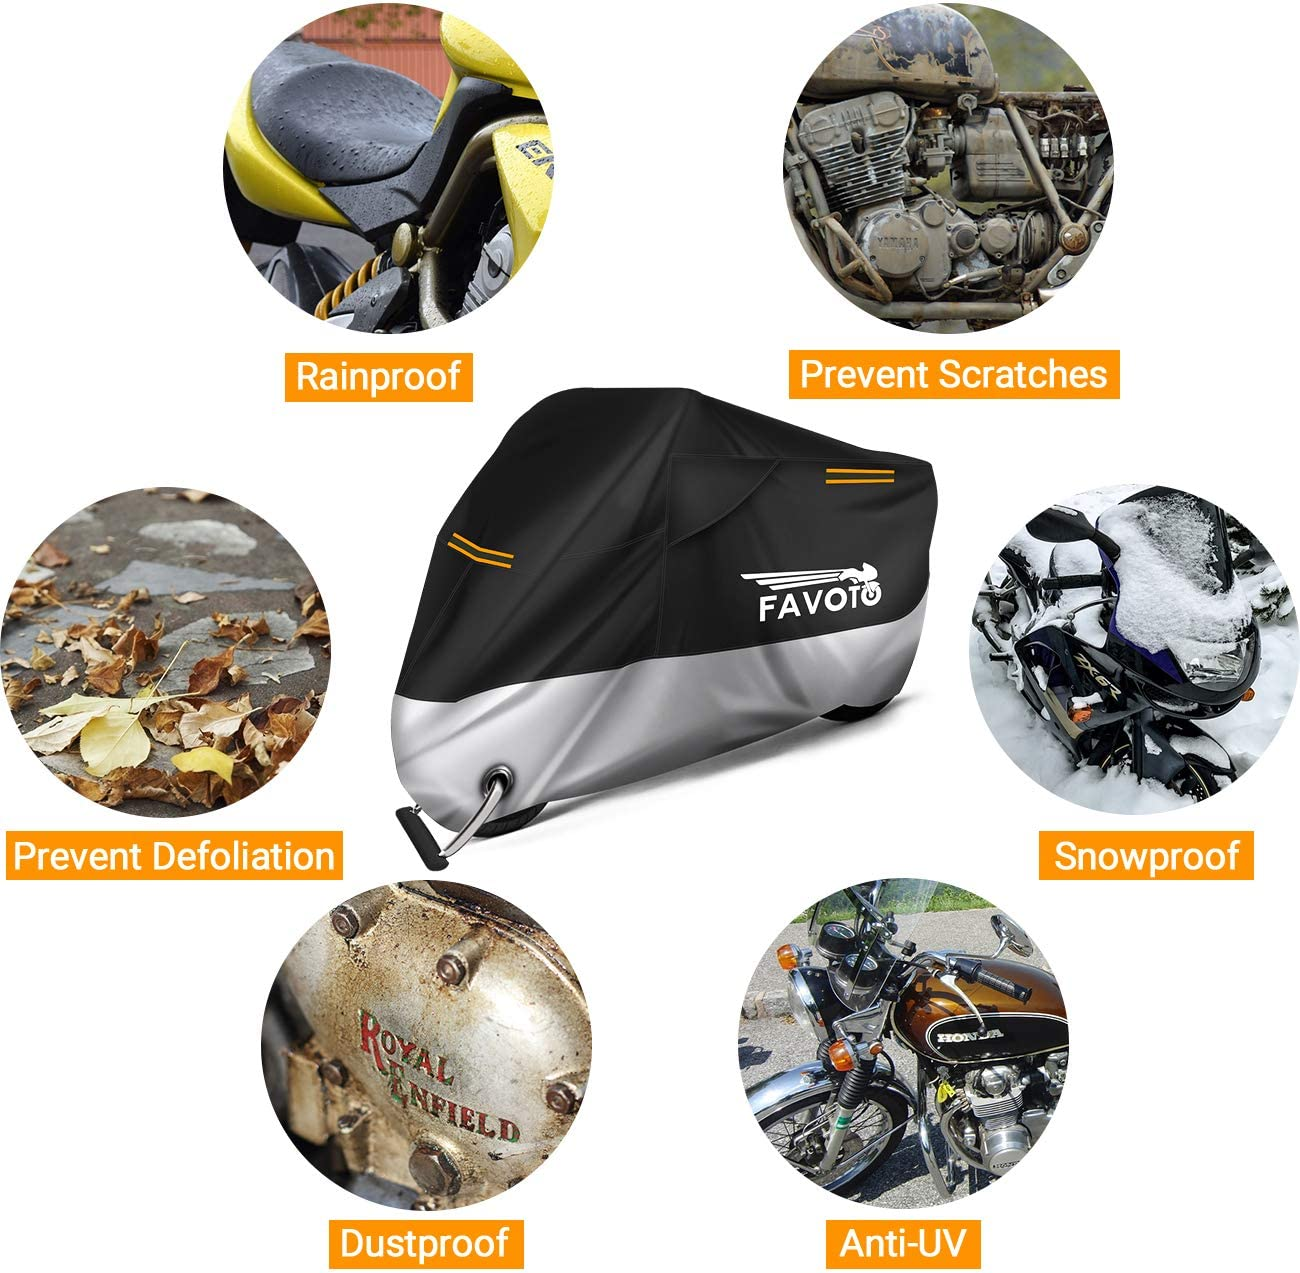 Favoto Motorcycle Cover Universal 96.5 inches in Length Heavy Duty Oxford Fabric with Air Vents Lock-hole 3 Night Reflectors Windproof Buckles Carrying Bag Waterproof Rain Dust Sun Outdoor Protection